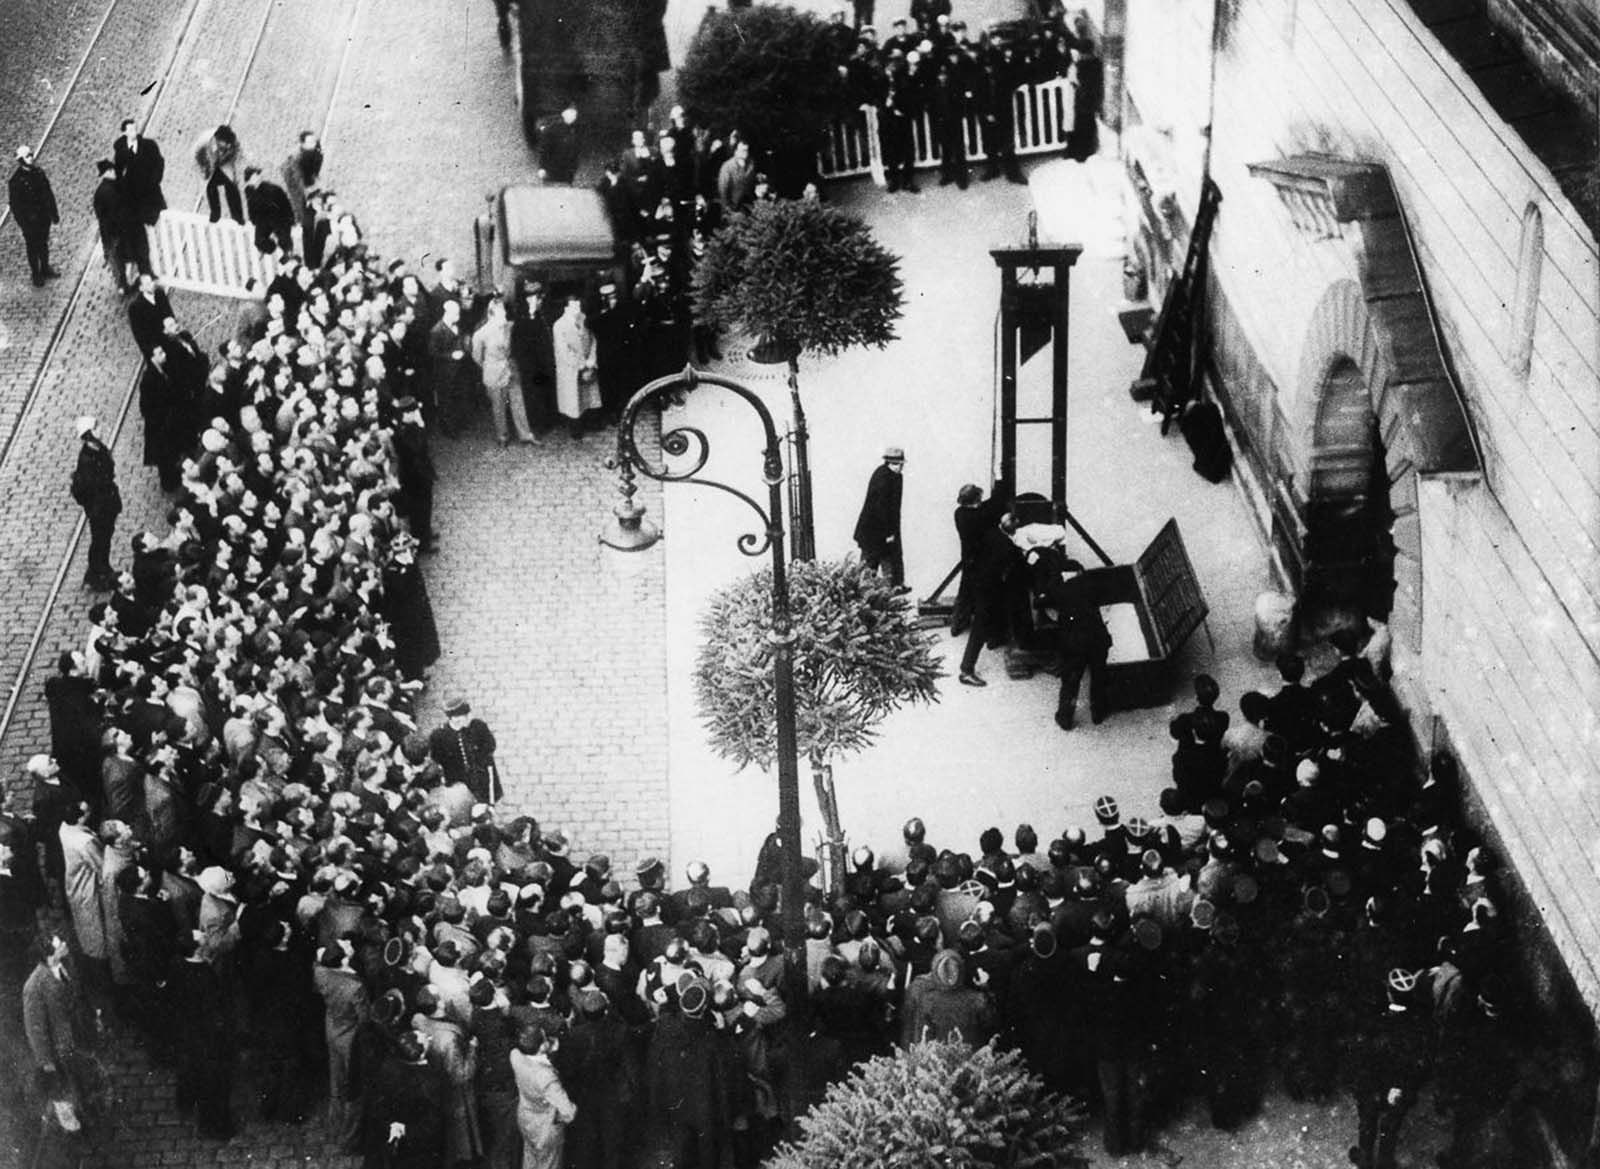 Weidmann is placed in the guillotine seconds before the blade falls.